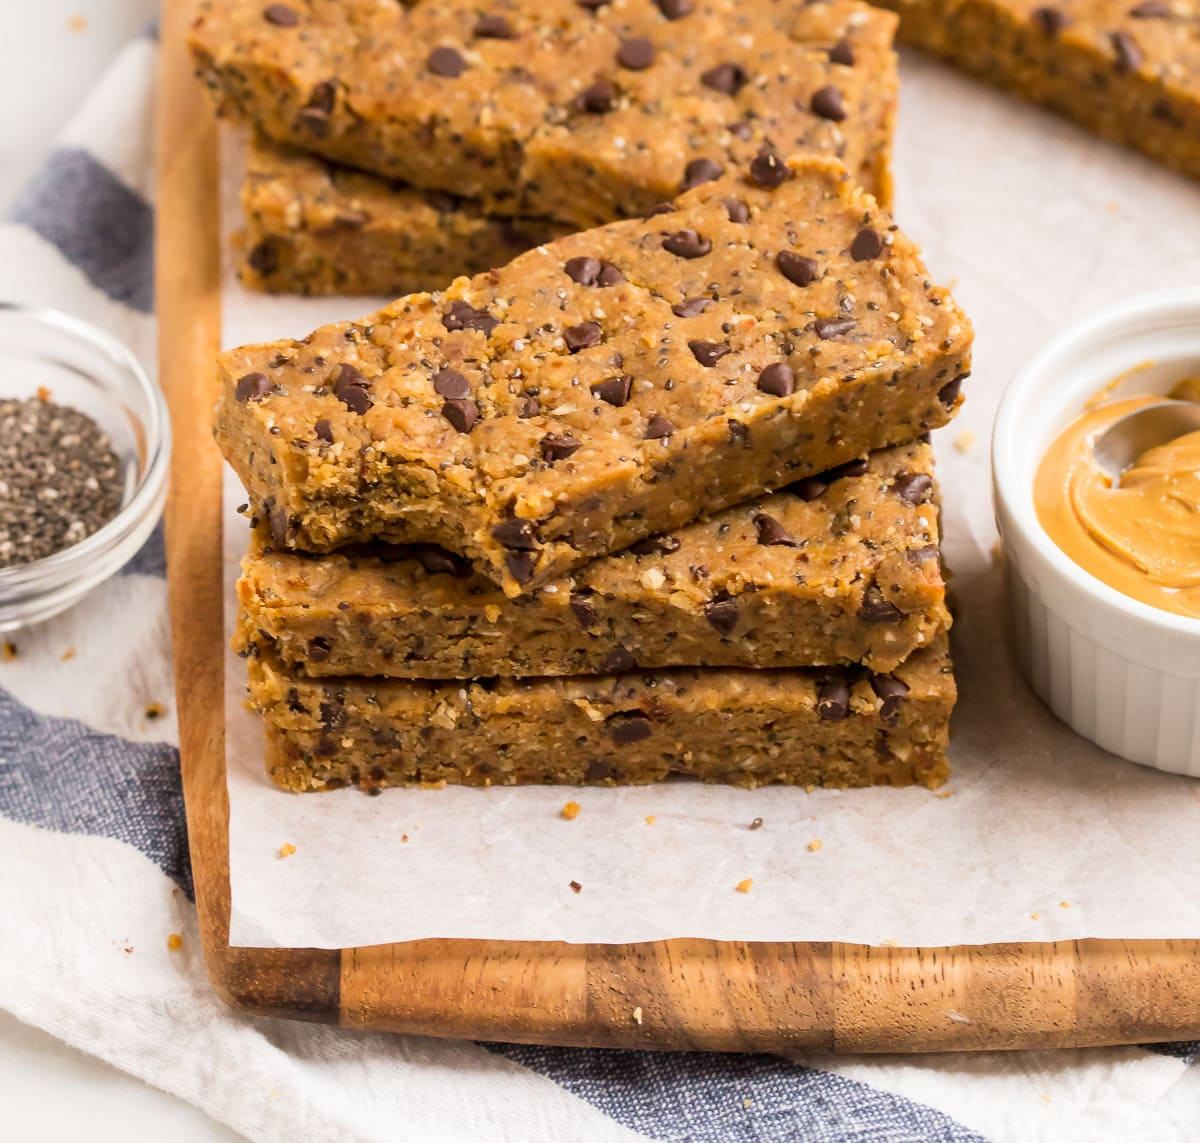 Simple and delicious no bake vegan protein bars